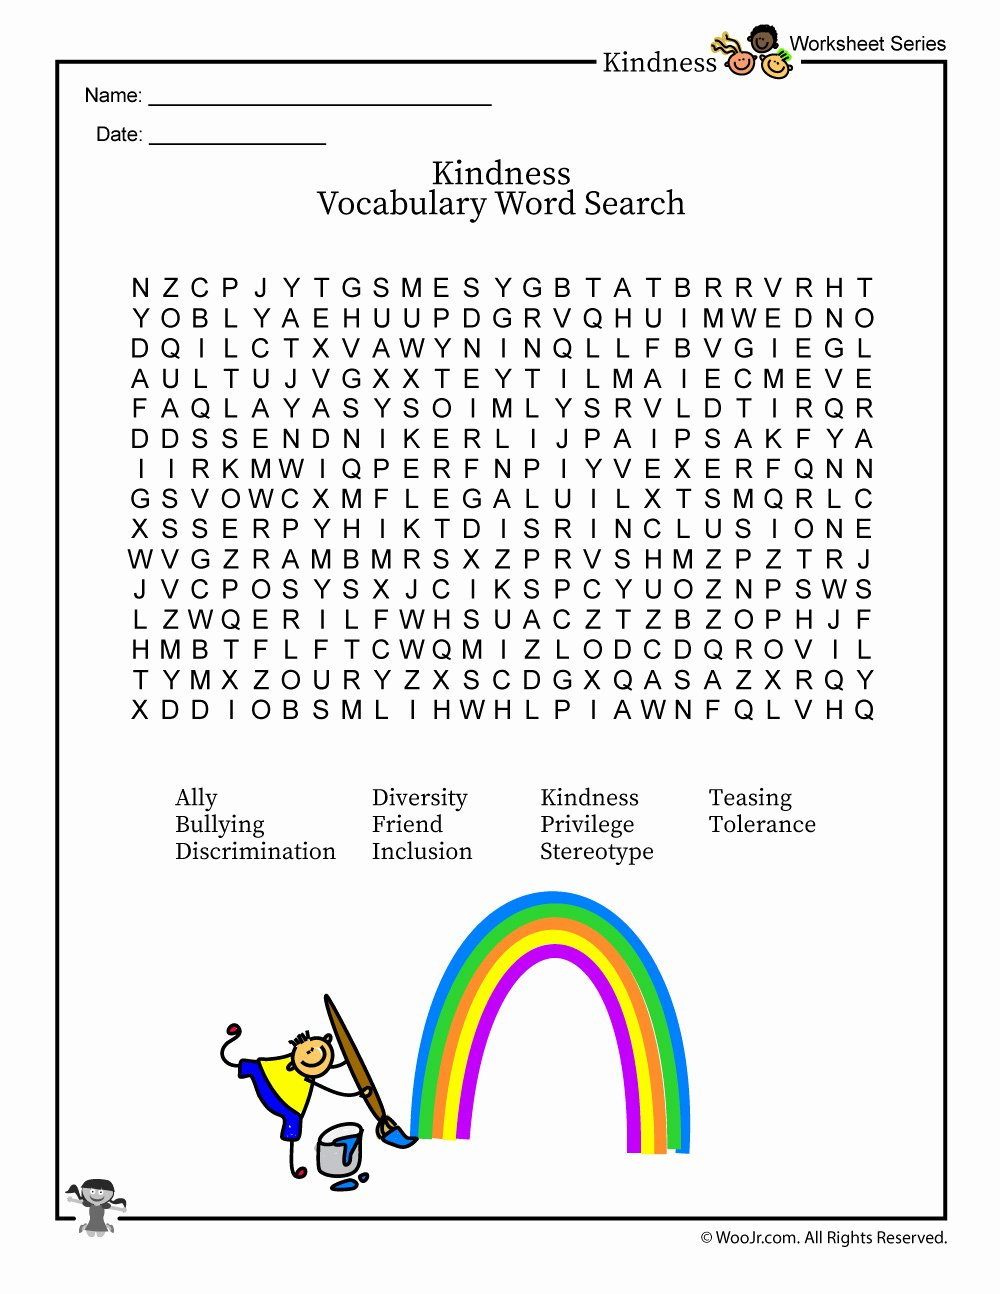 Kindness Worksheets for Preschoolers New Classroom Kindness & Inclusion Vocabulary Word Search